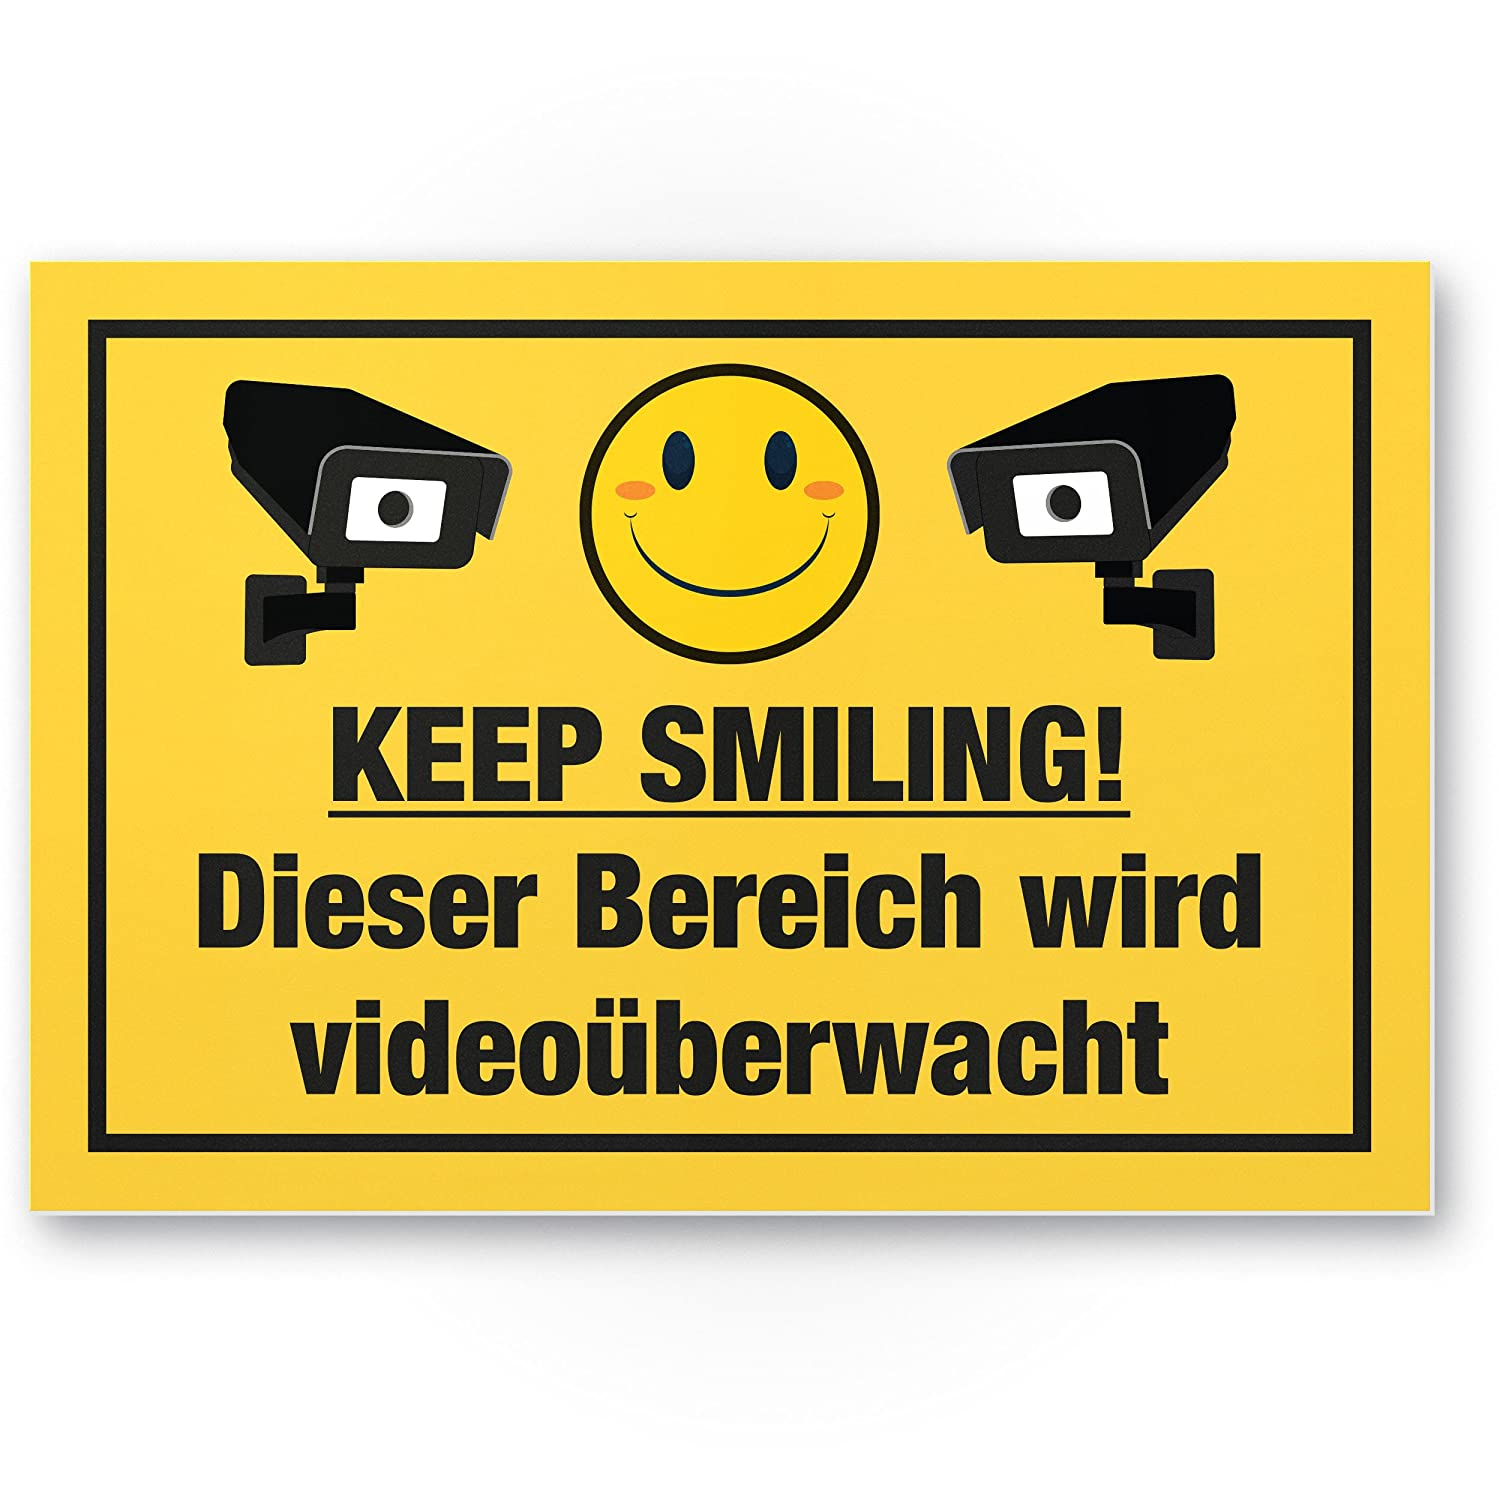 Keep Smiling - Rango se vídeo mediante wacht/Video ...